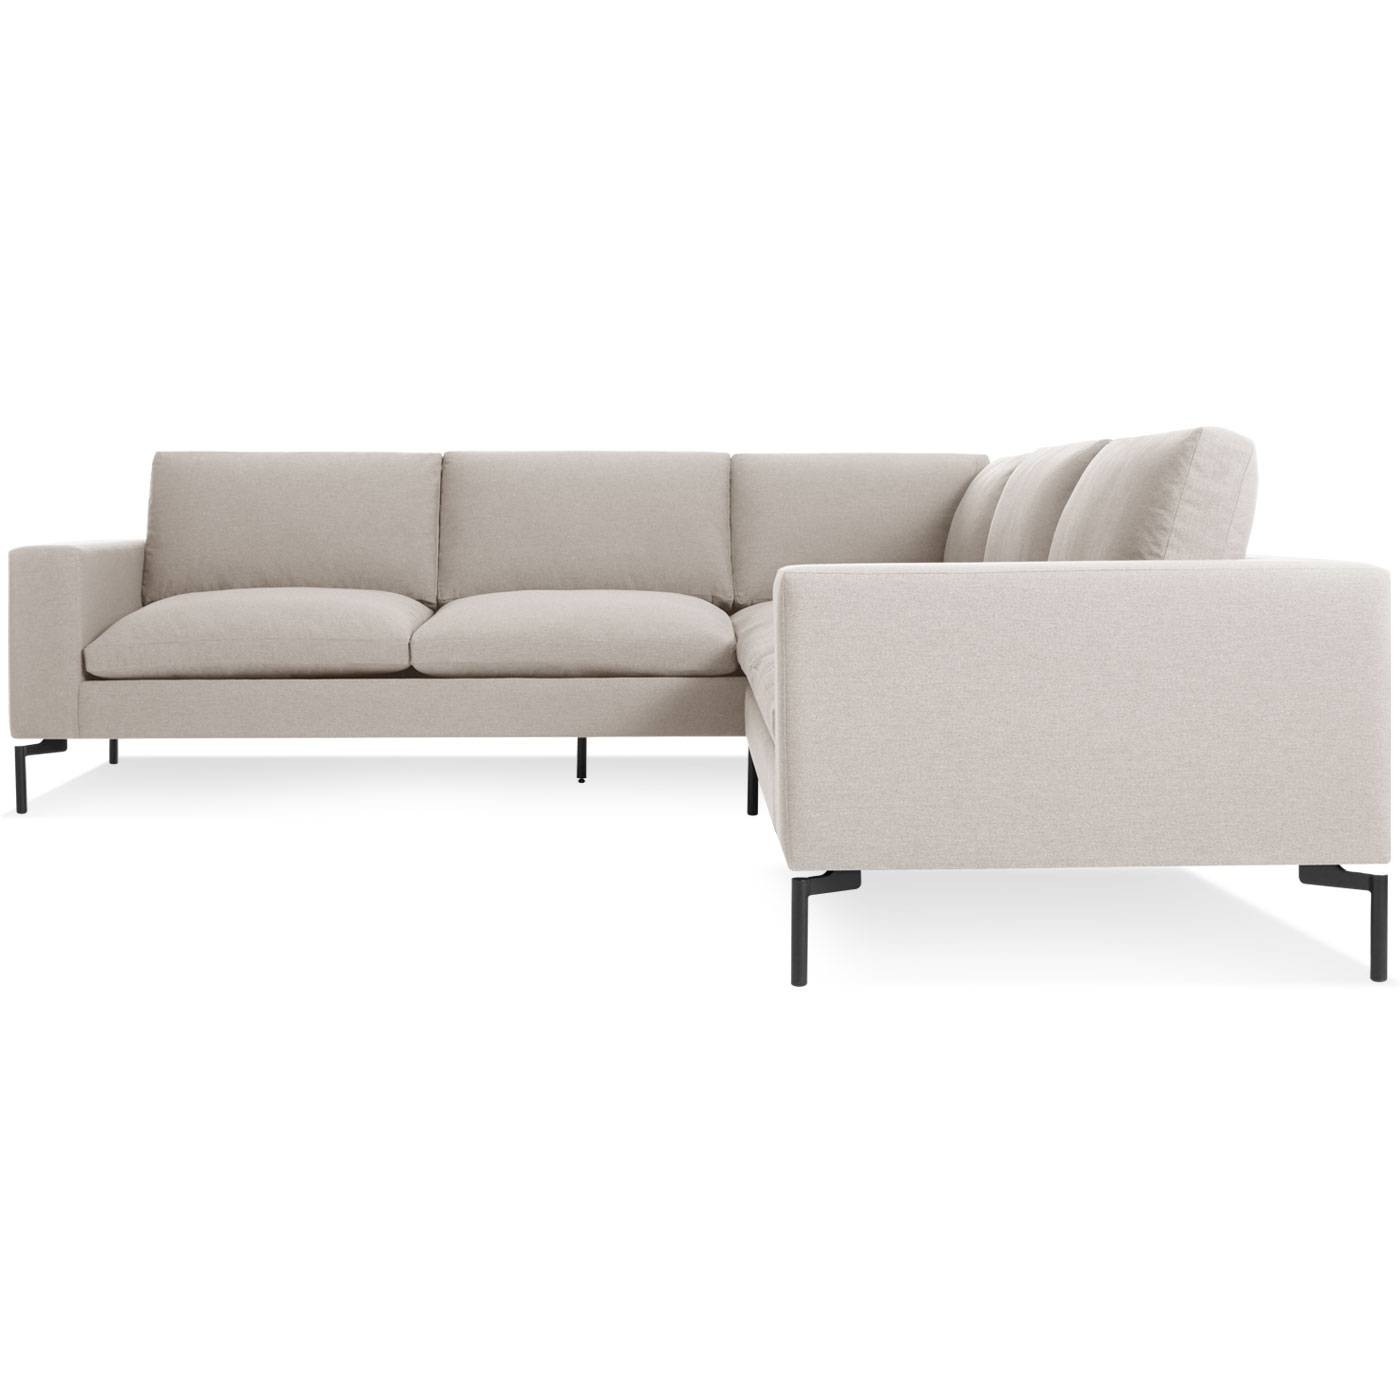 New Standard Small Sectional Sofa - Modern Sofas | Blu Dot within Small Sectional Sofa (Image 16 of 30)